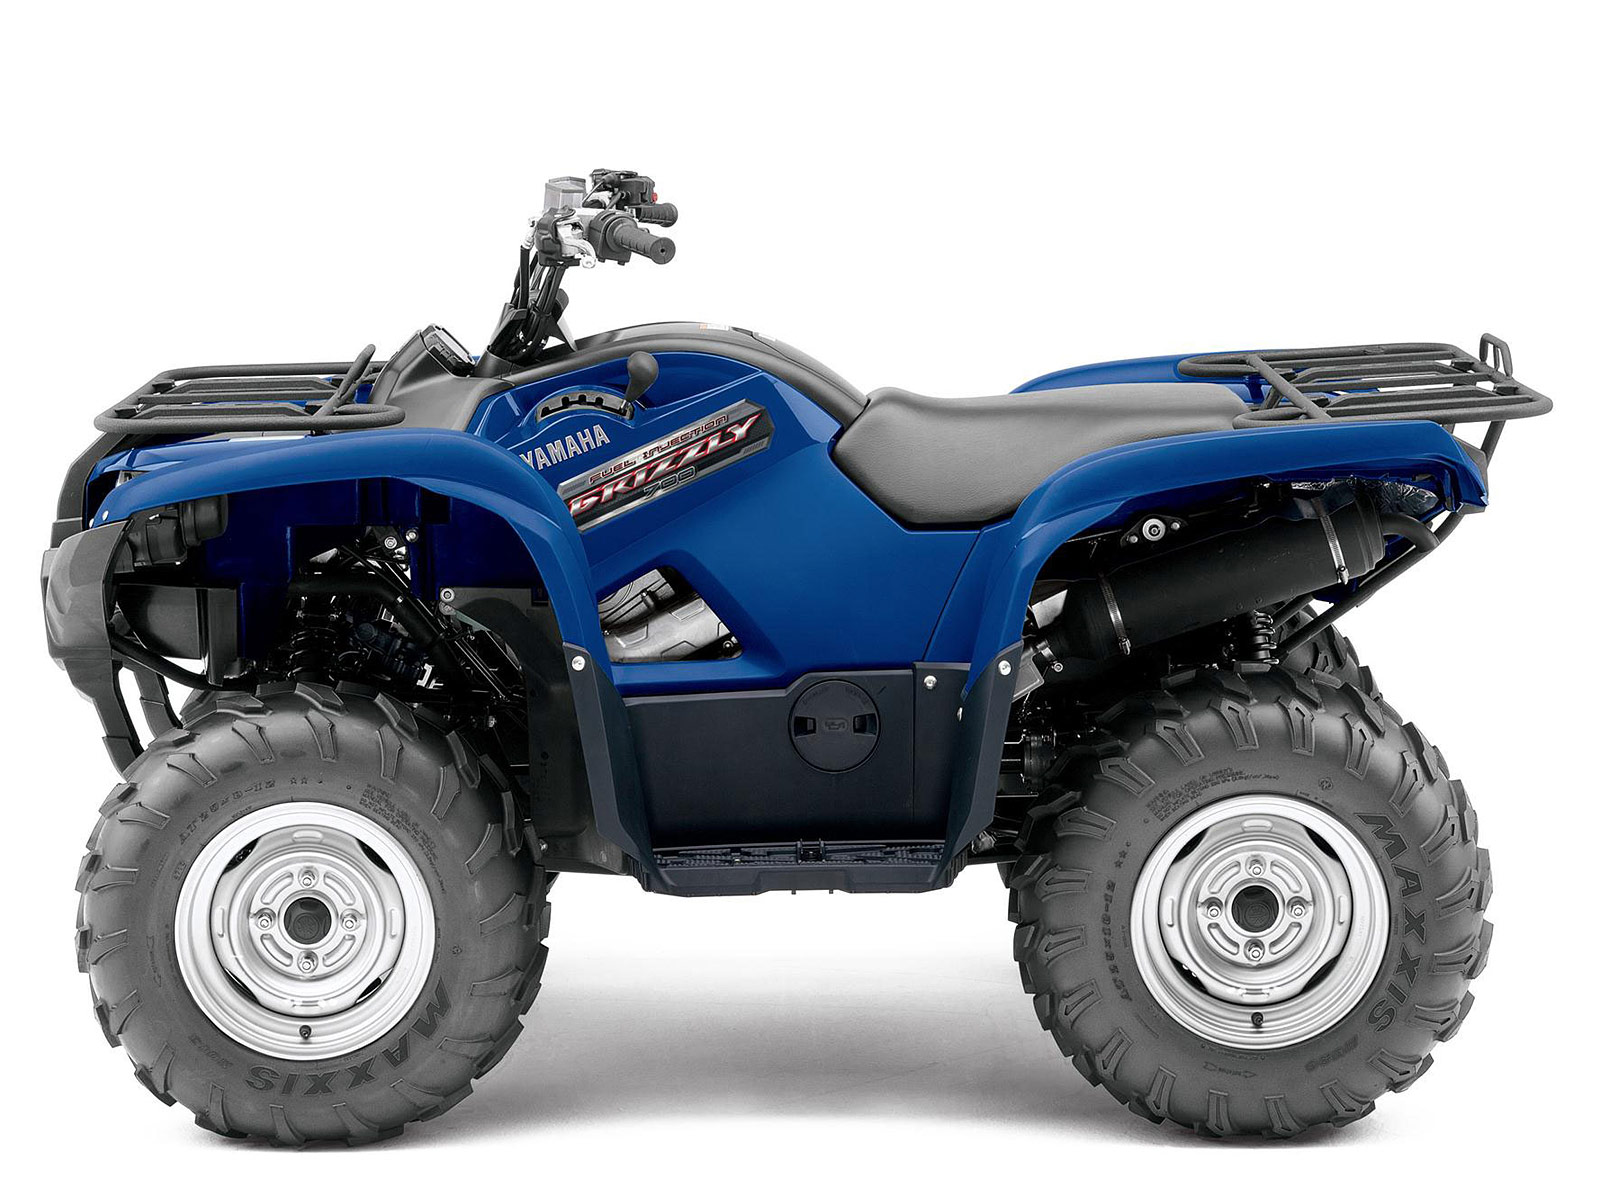 medium resolution of 2013 grizzly 700 fi auto 4x4 yamaha atv pictures 480x360 pixels